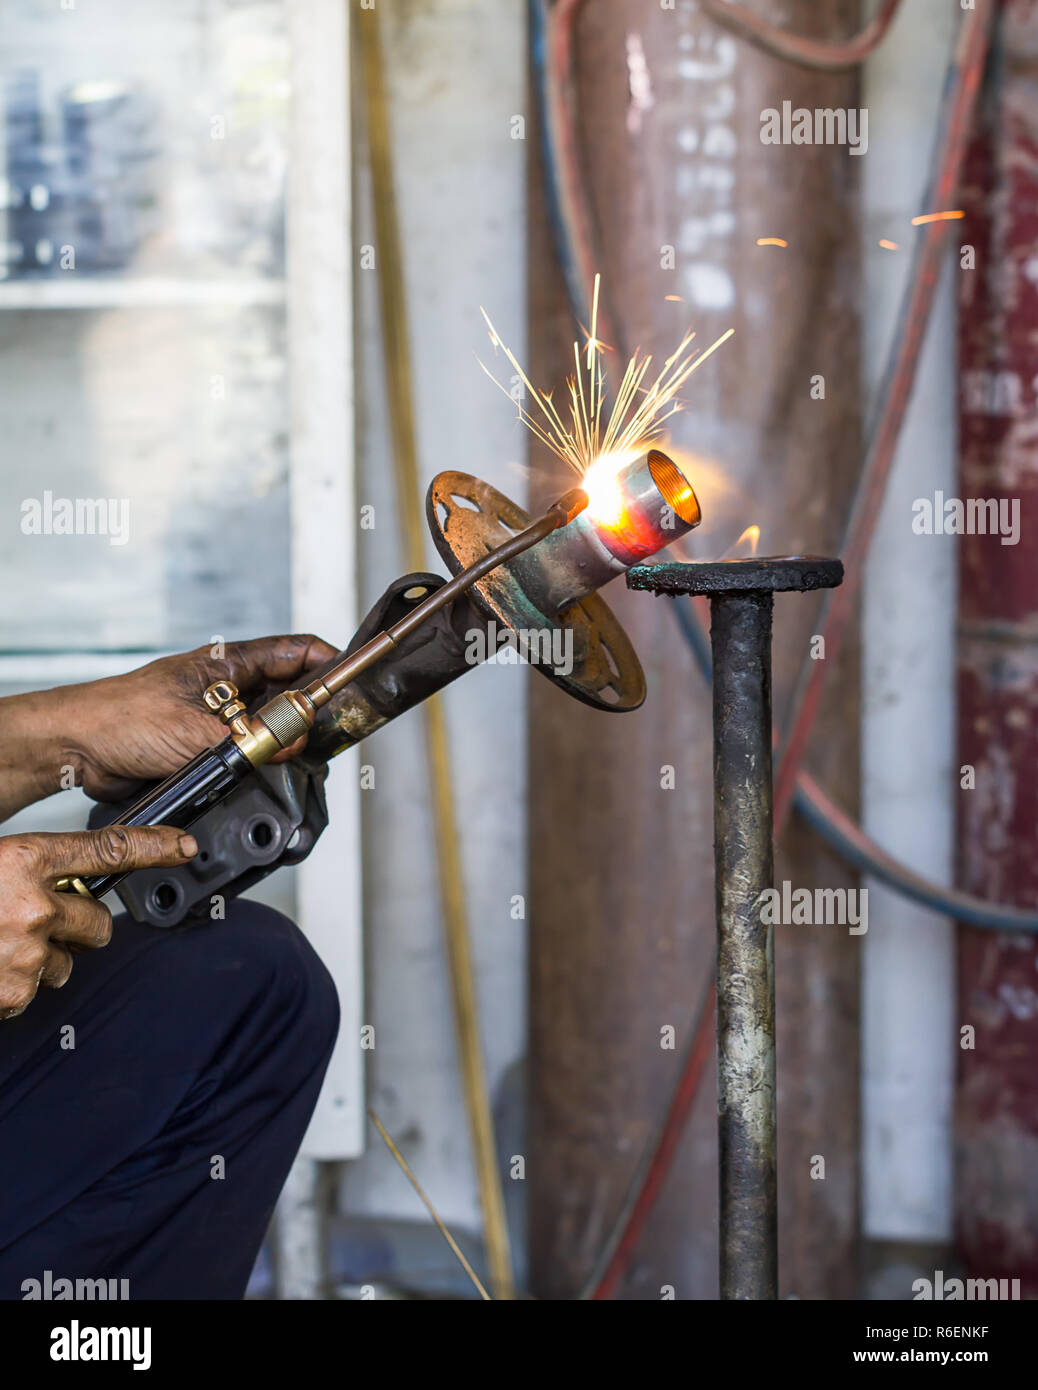 Welders were repairing Shock absorbers - Stock Image